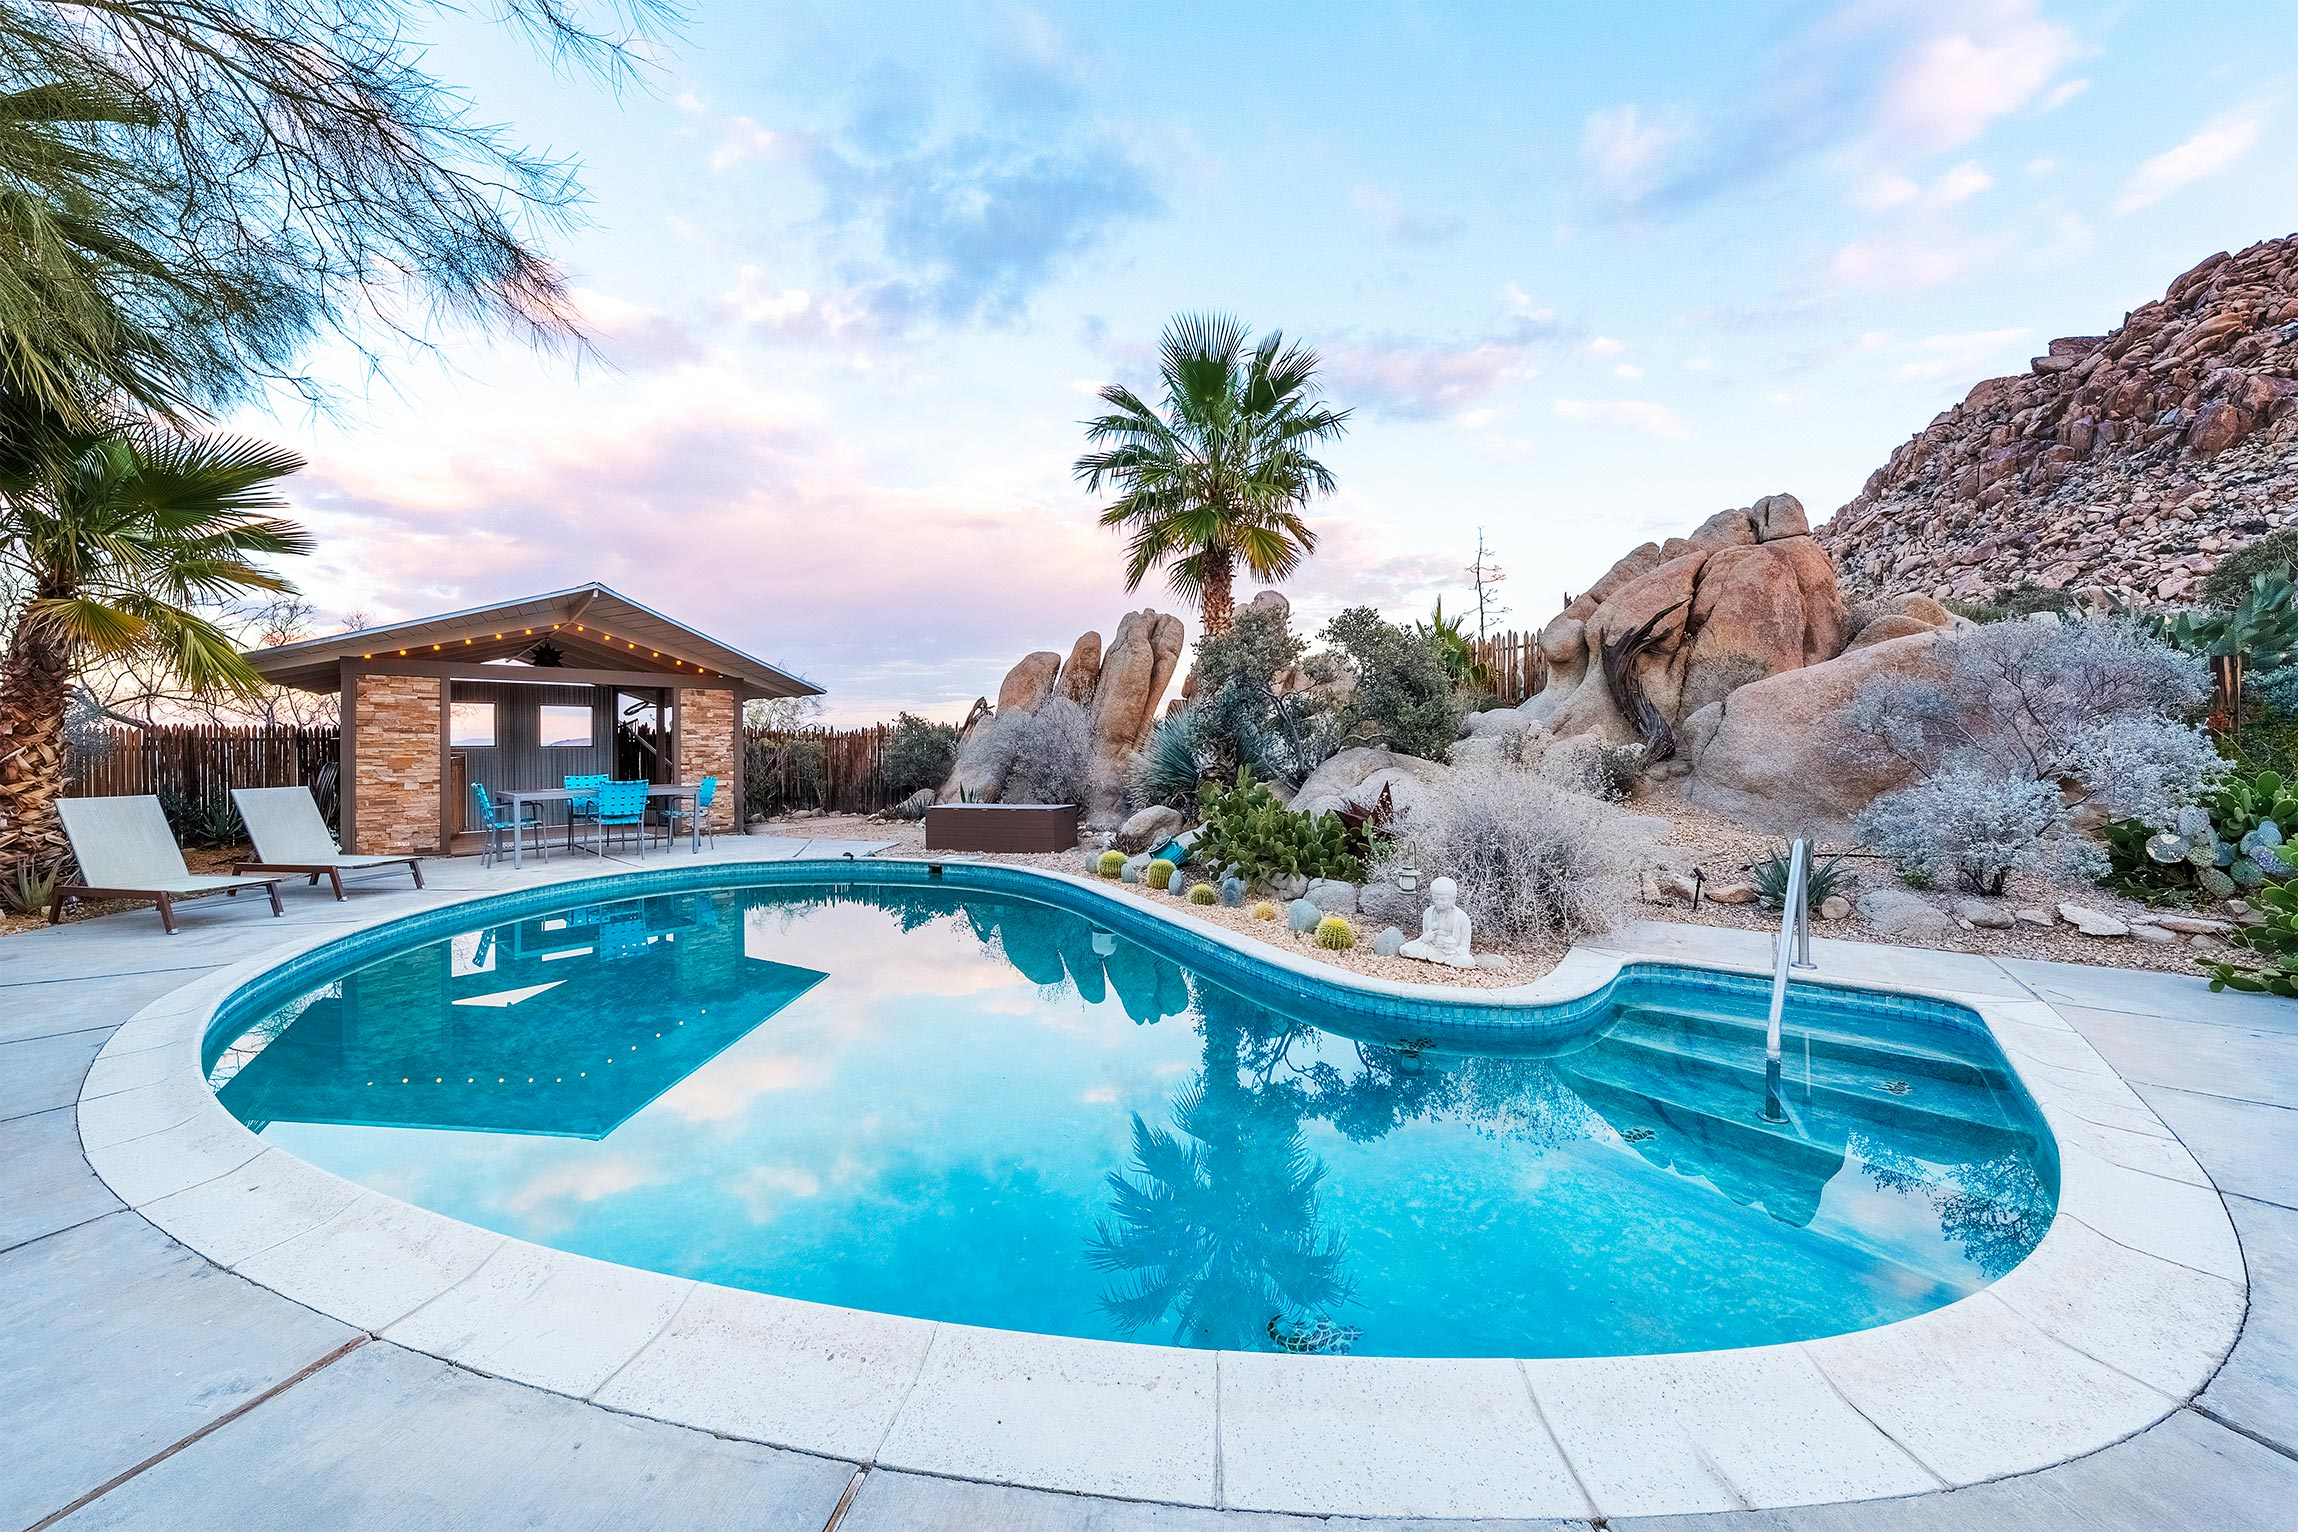 Rockbound  Oasis Retreat  Joshua Tree  Rental High Desert